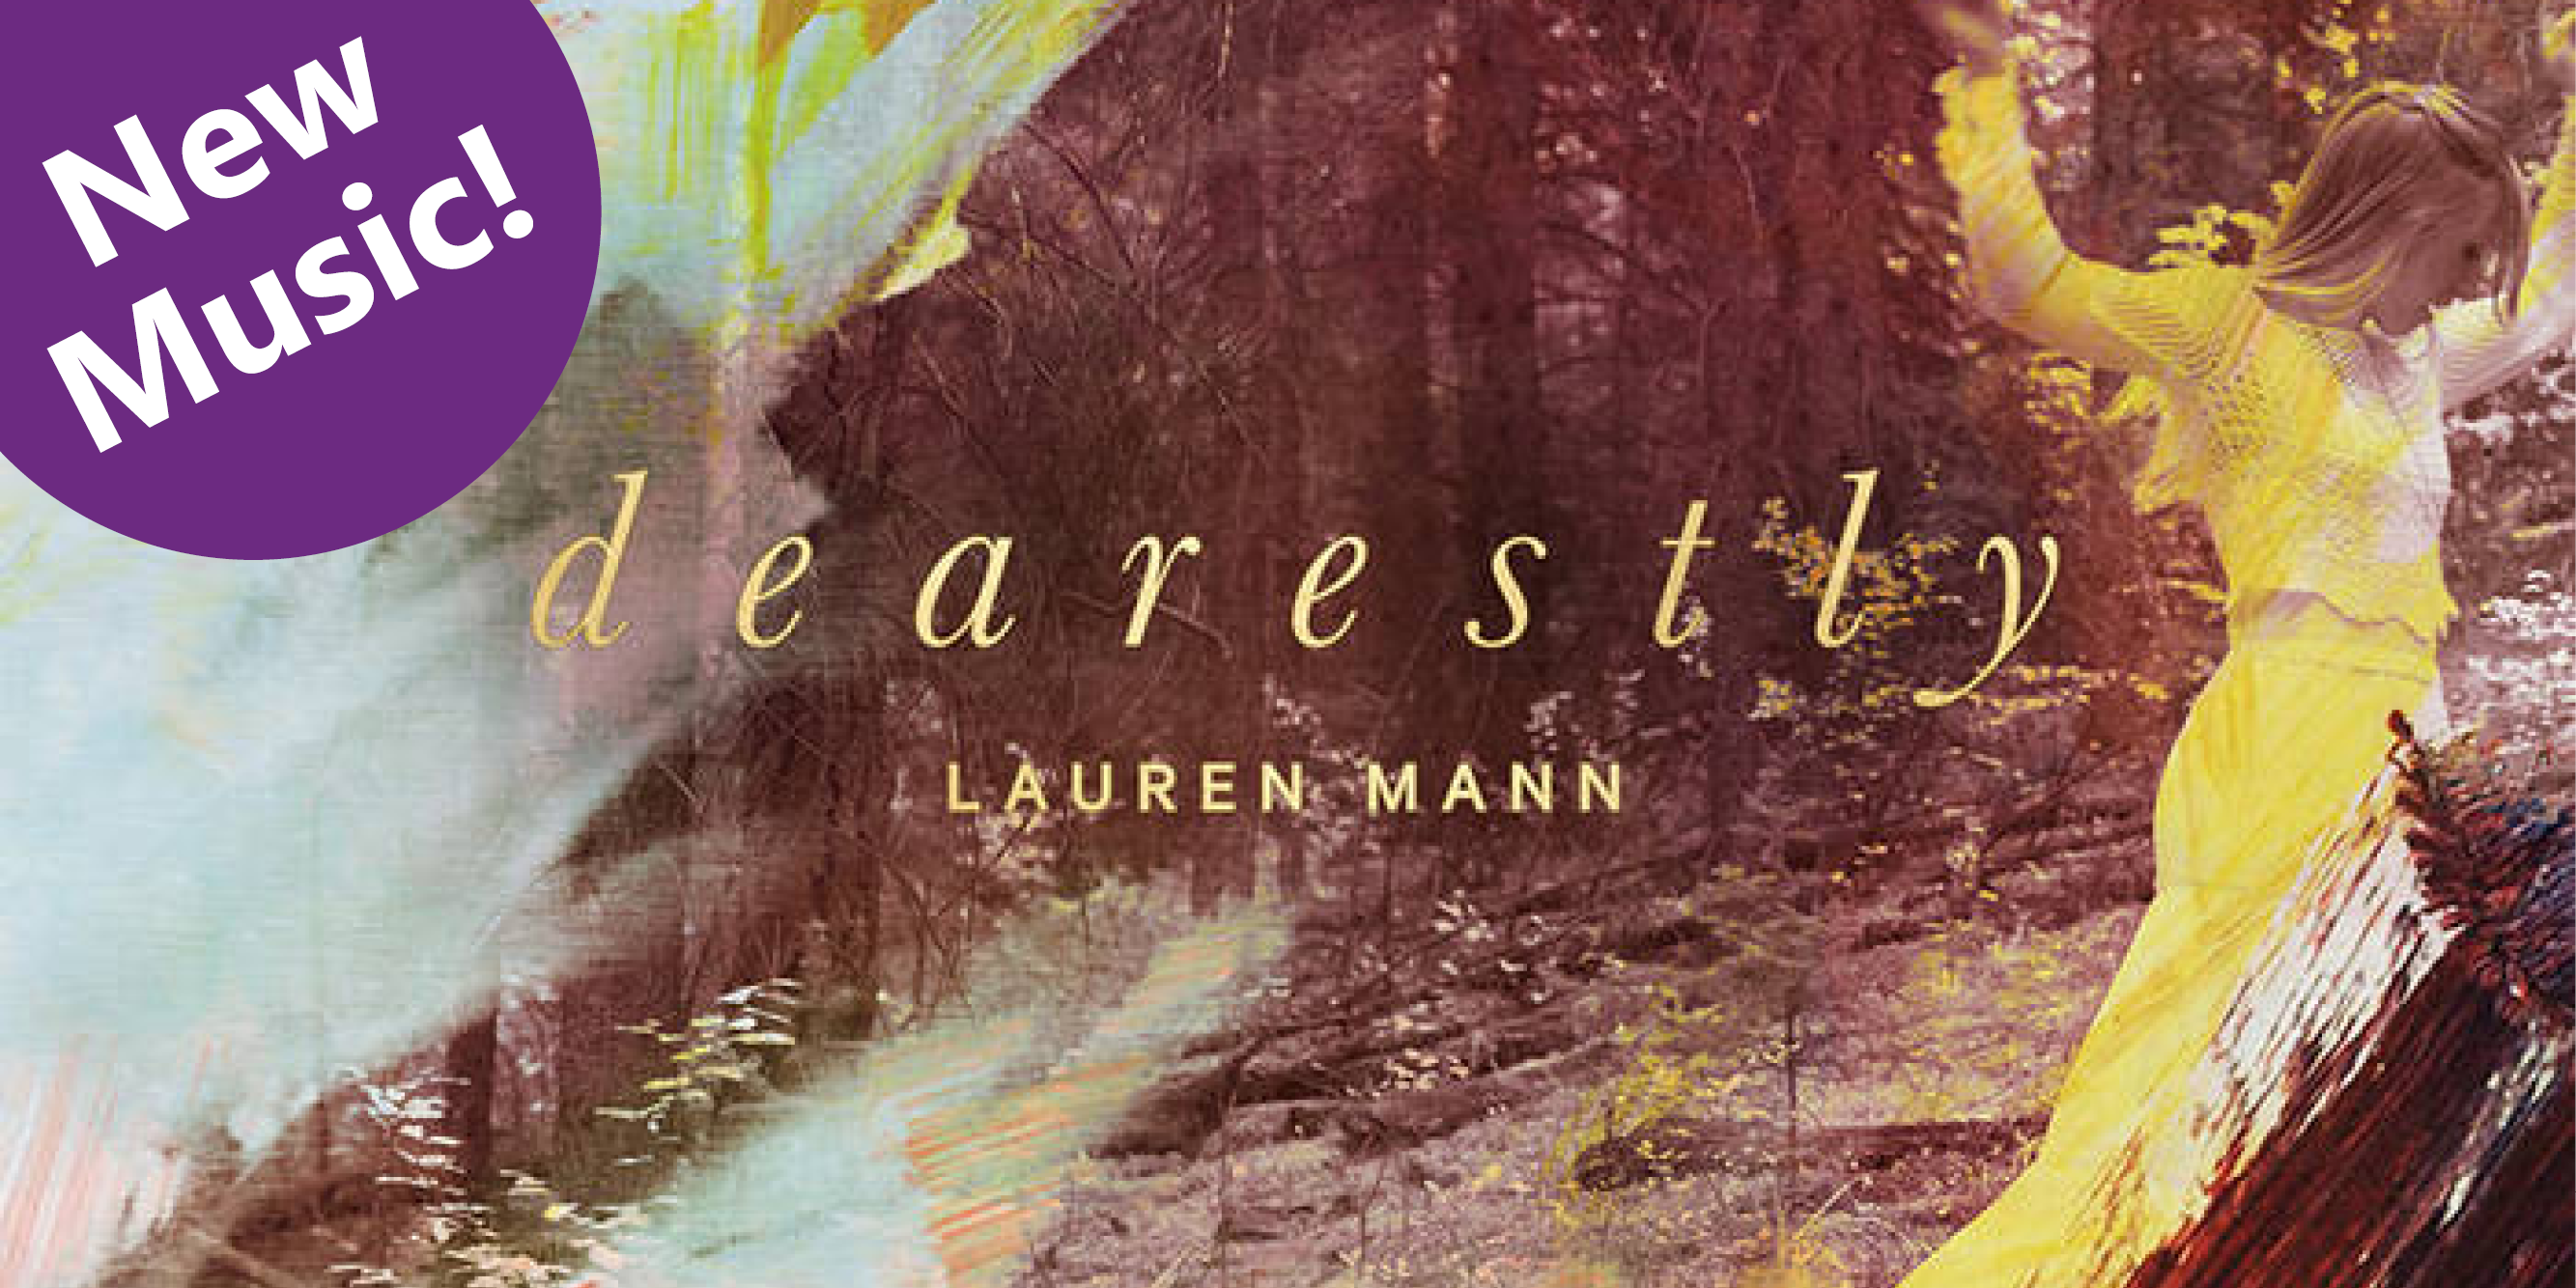 Lauren-Mann-Dearestly